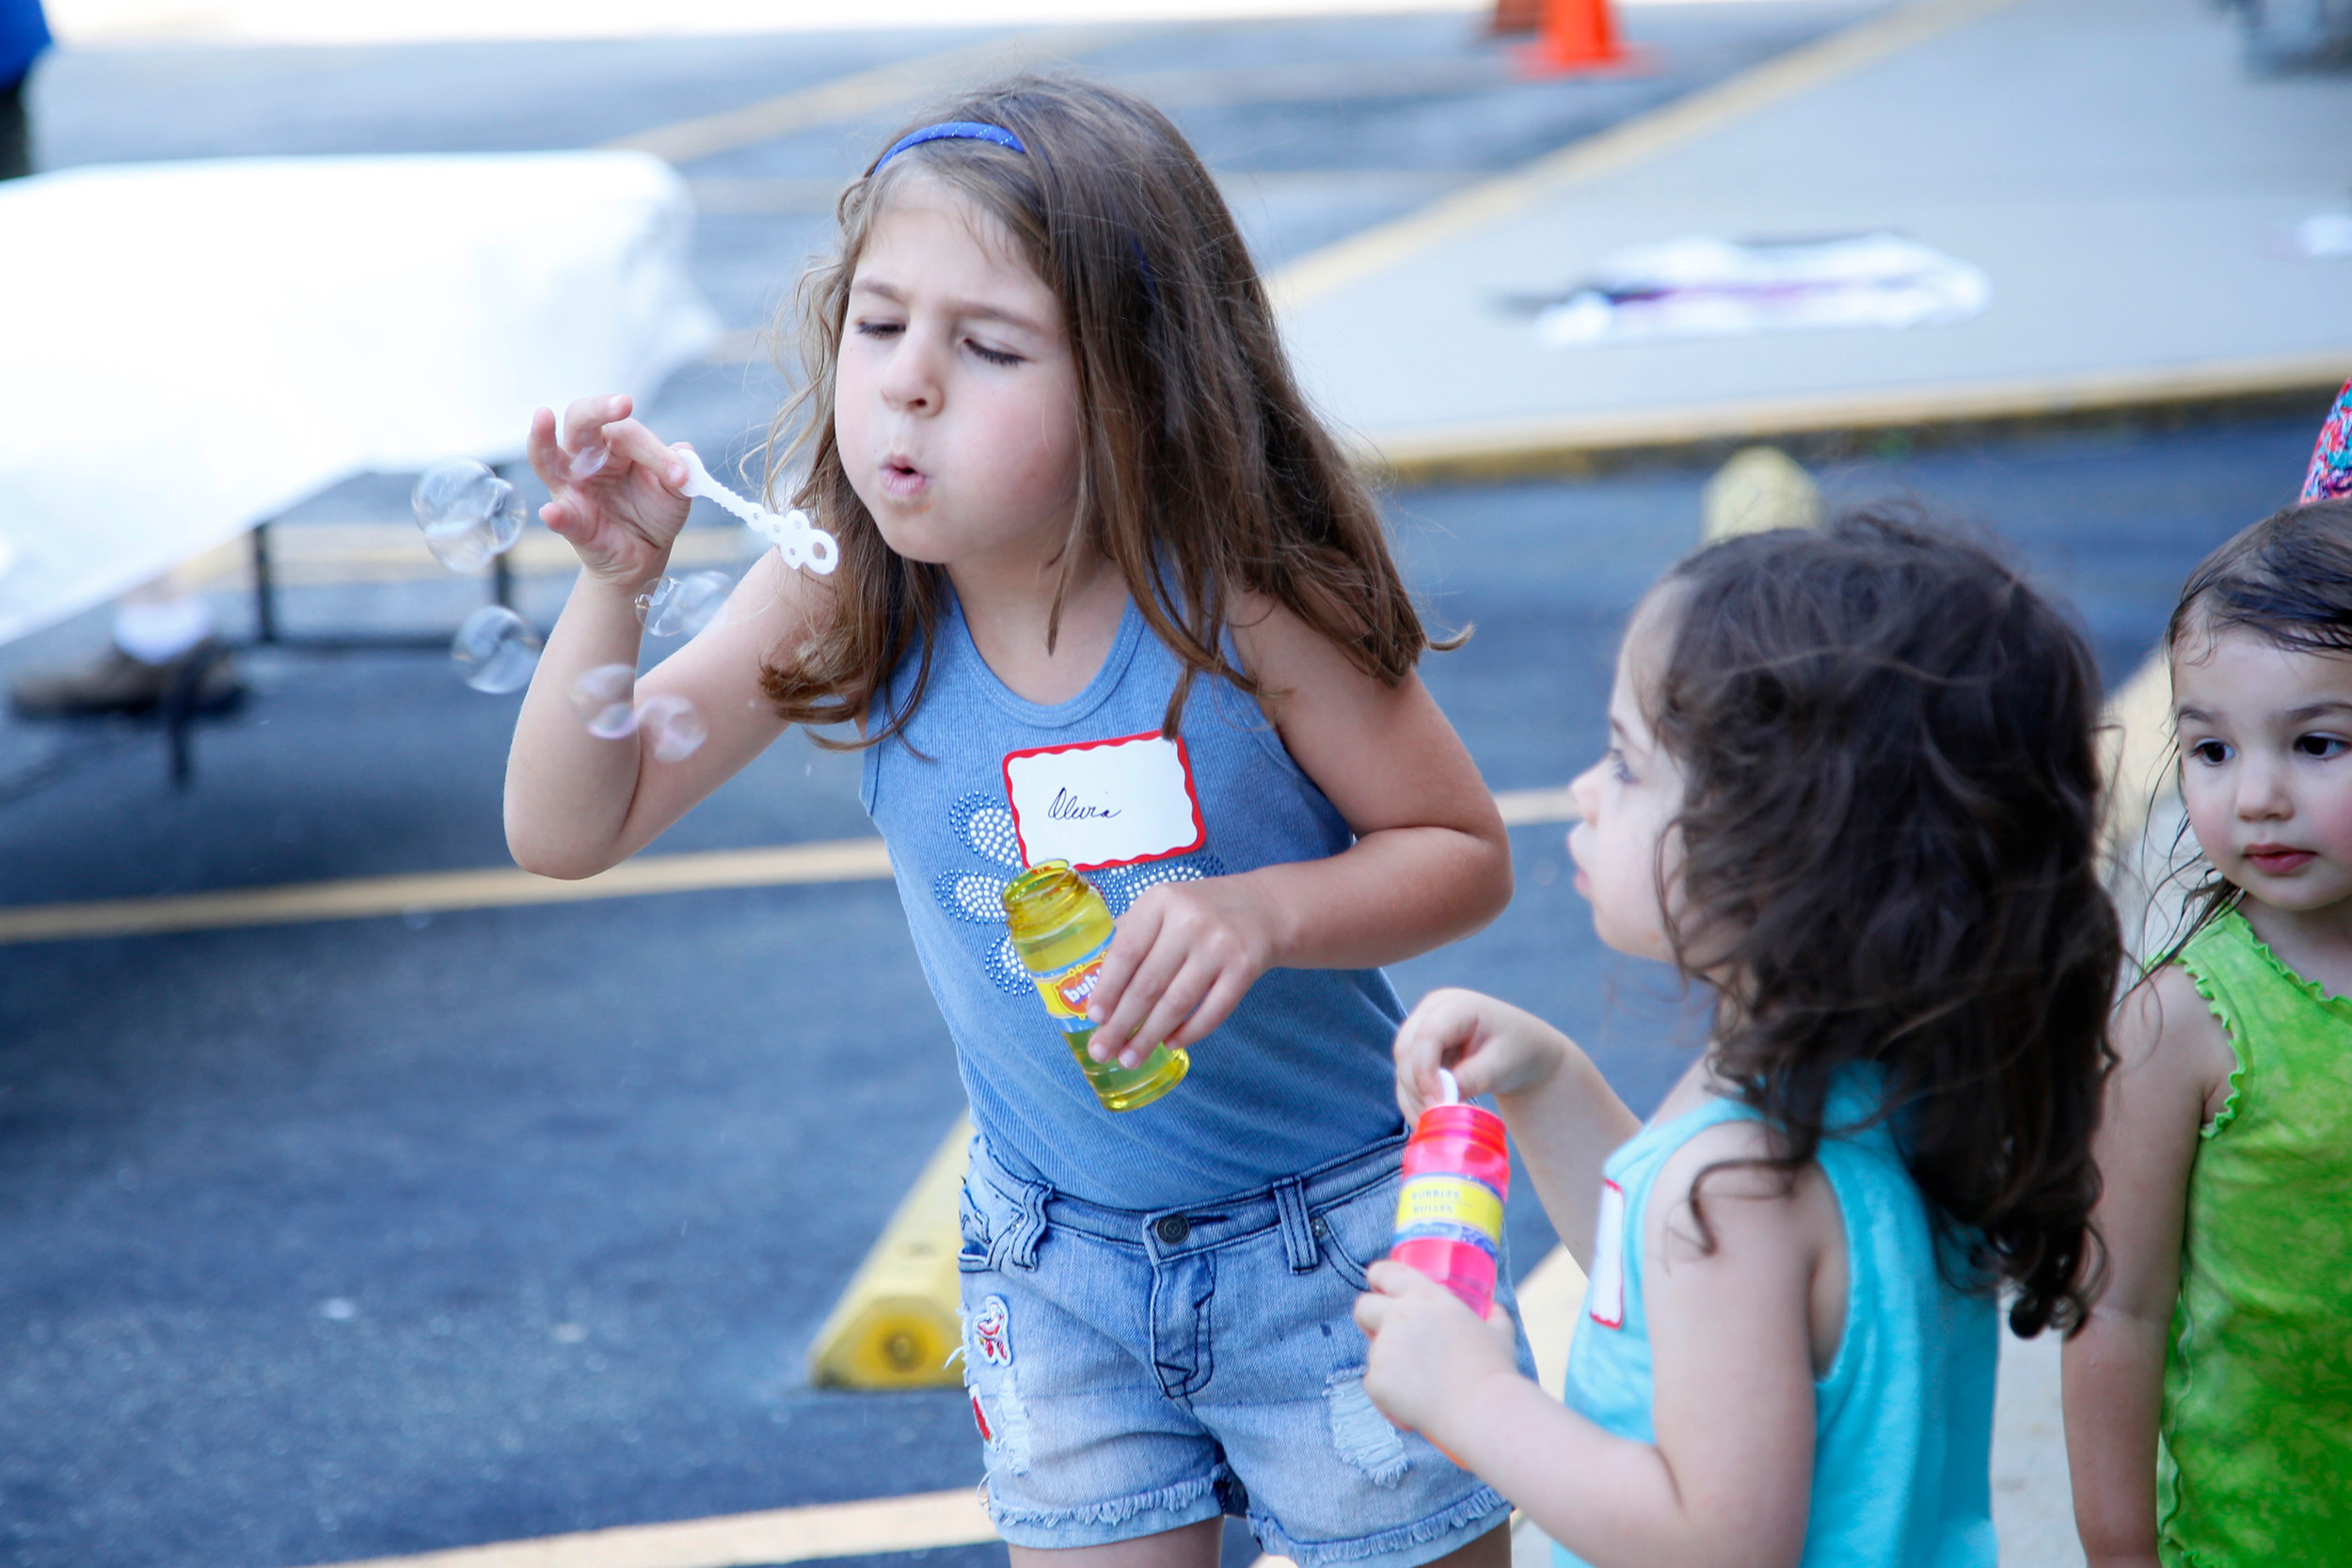 Four-year-old Olivia Torosian enjoyed the summer barbecue.